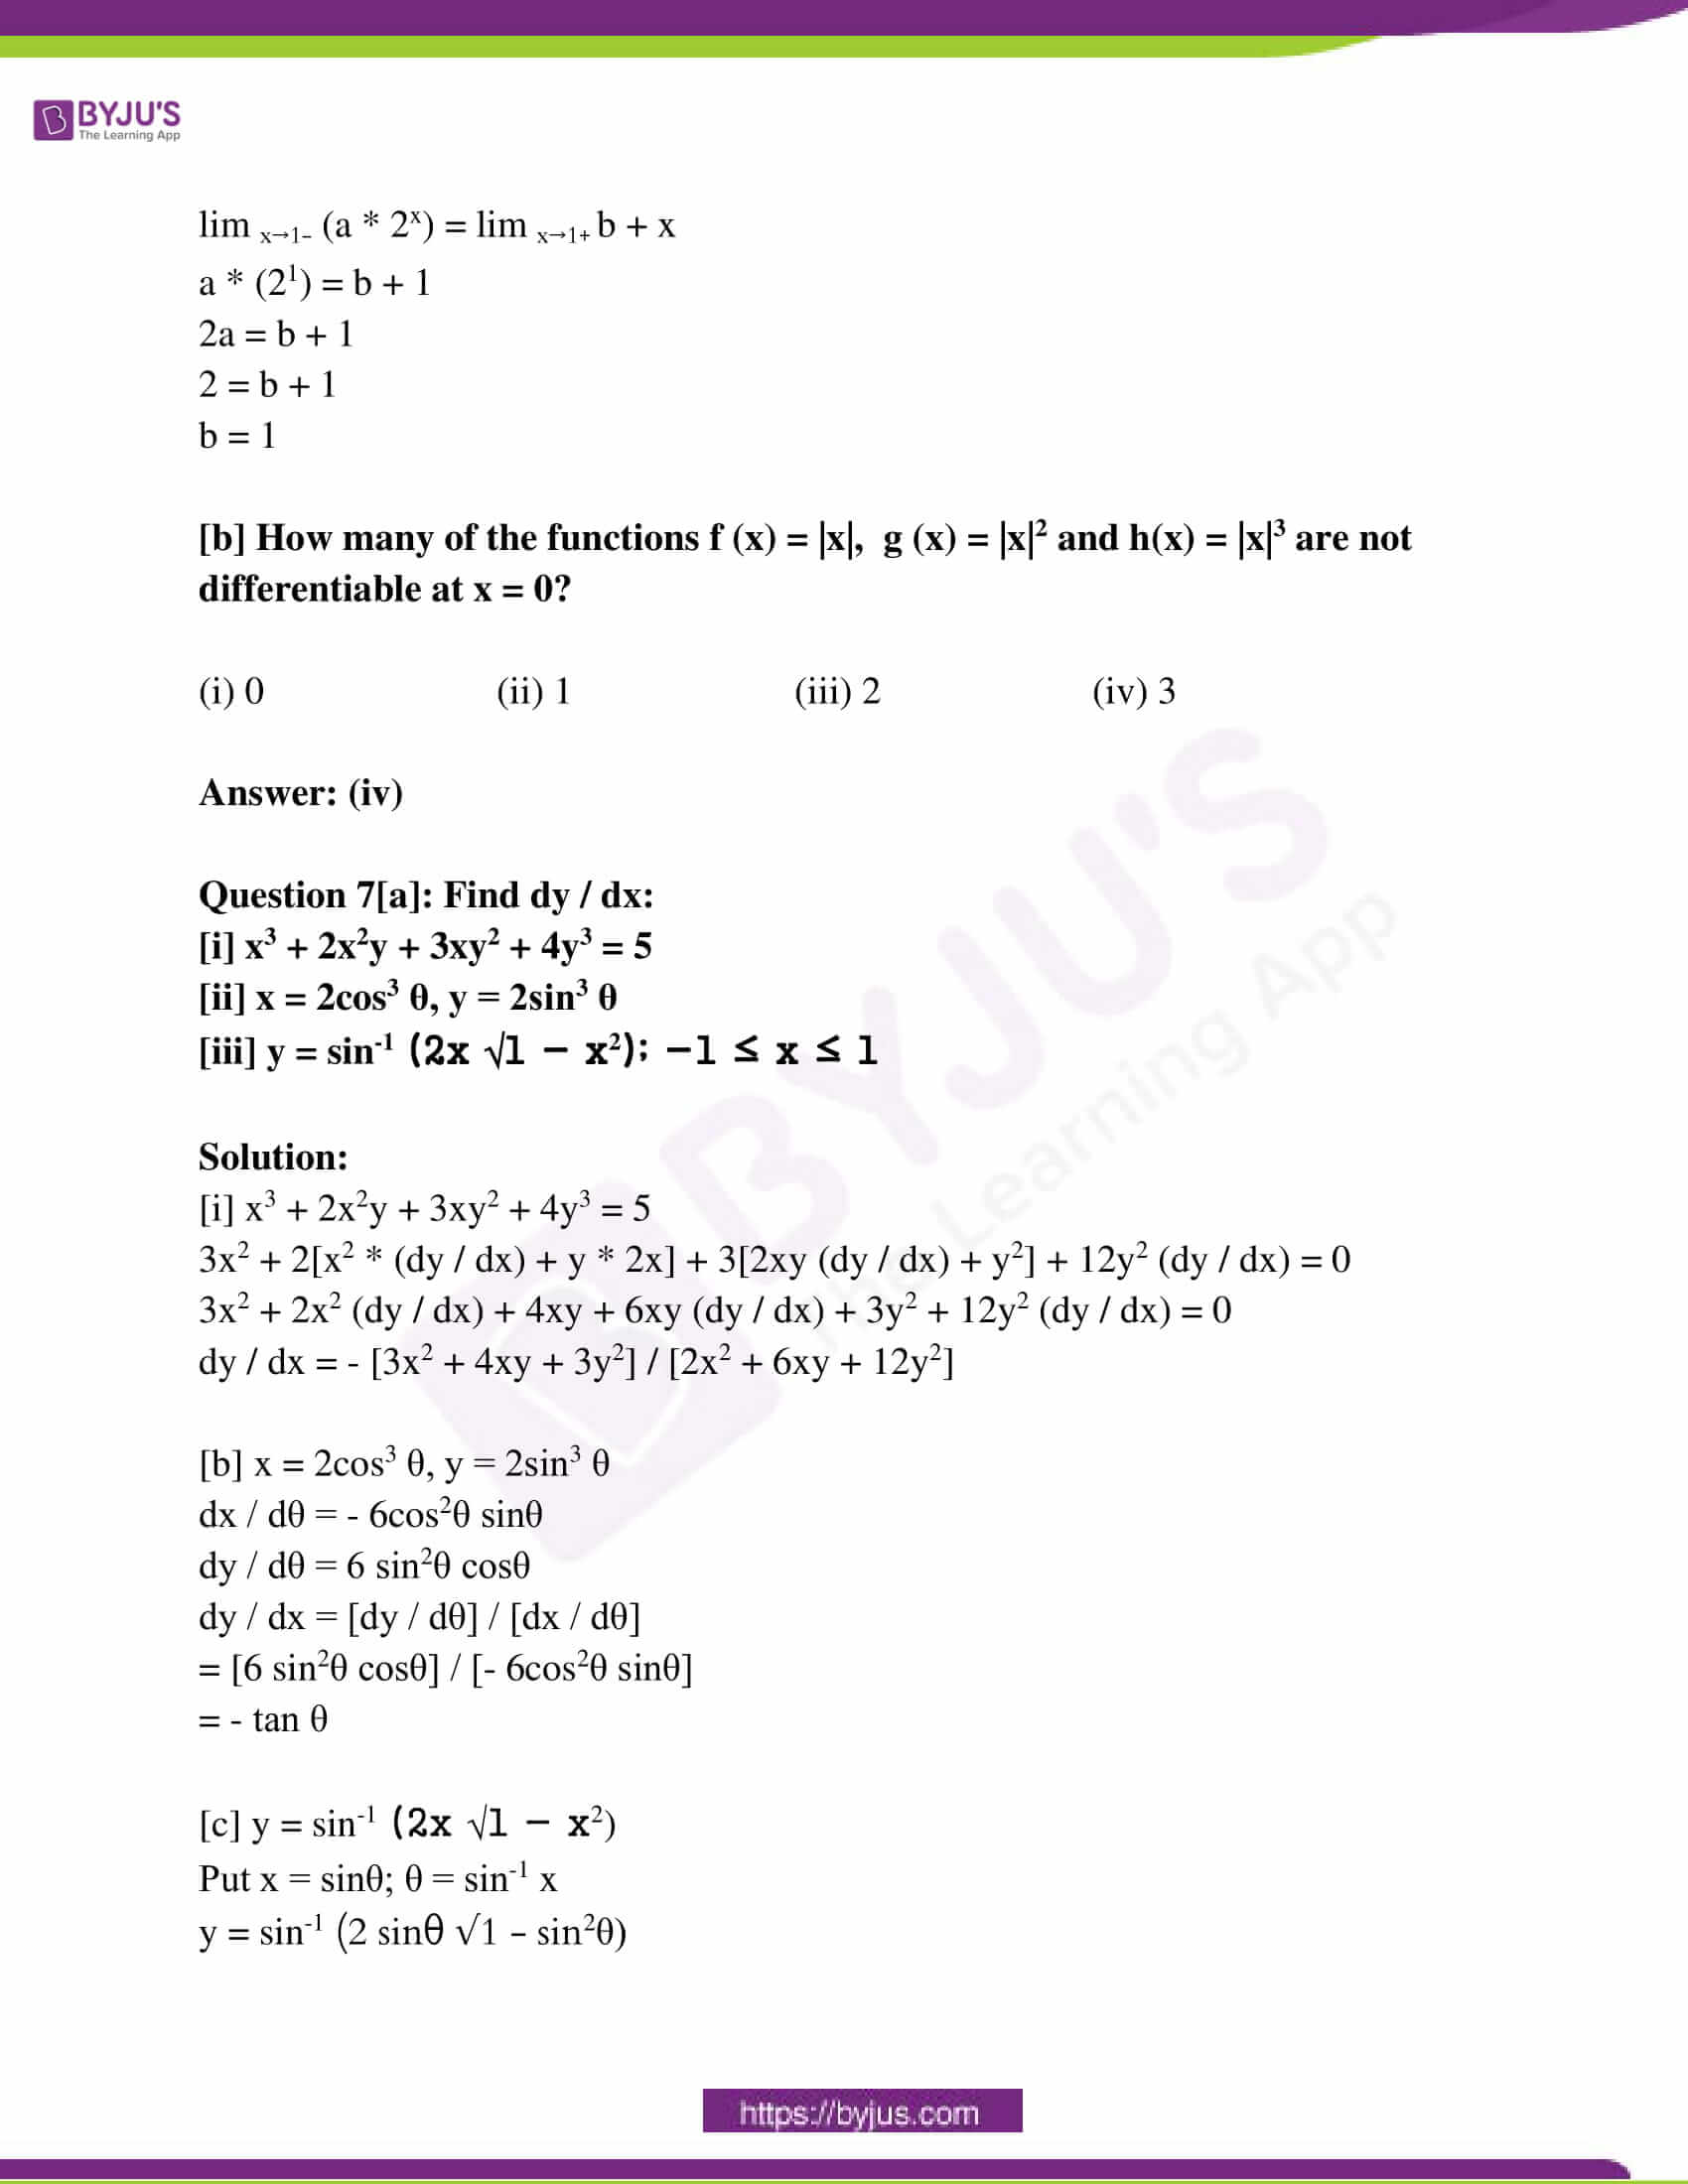 kerala class 12 examination question paper solutions march 2015 08